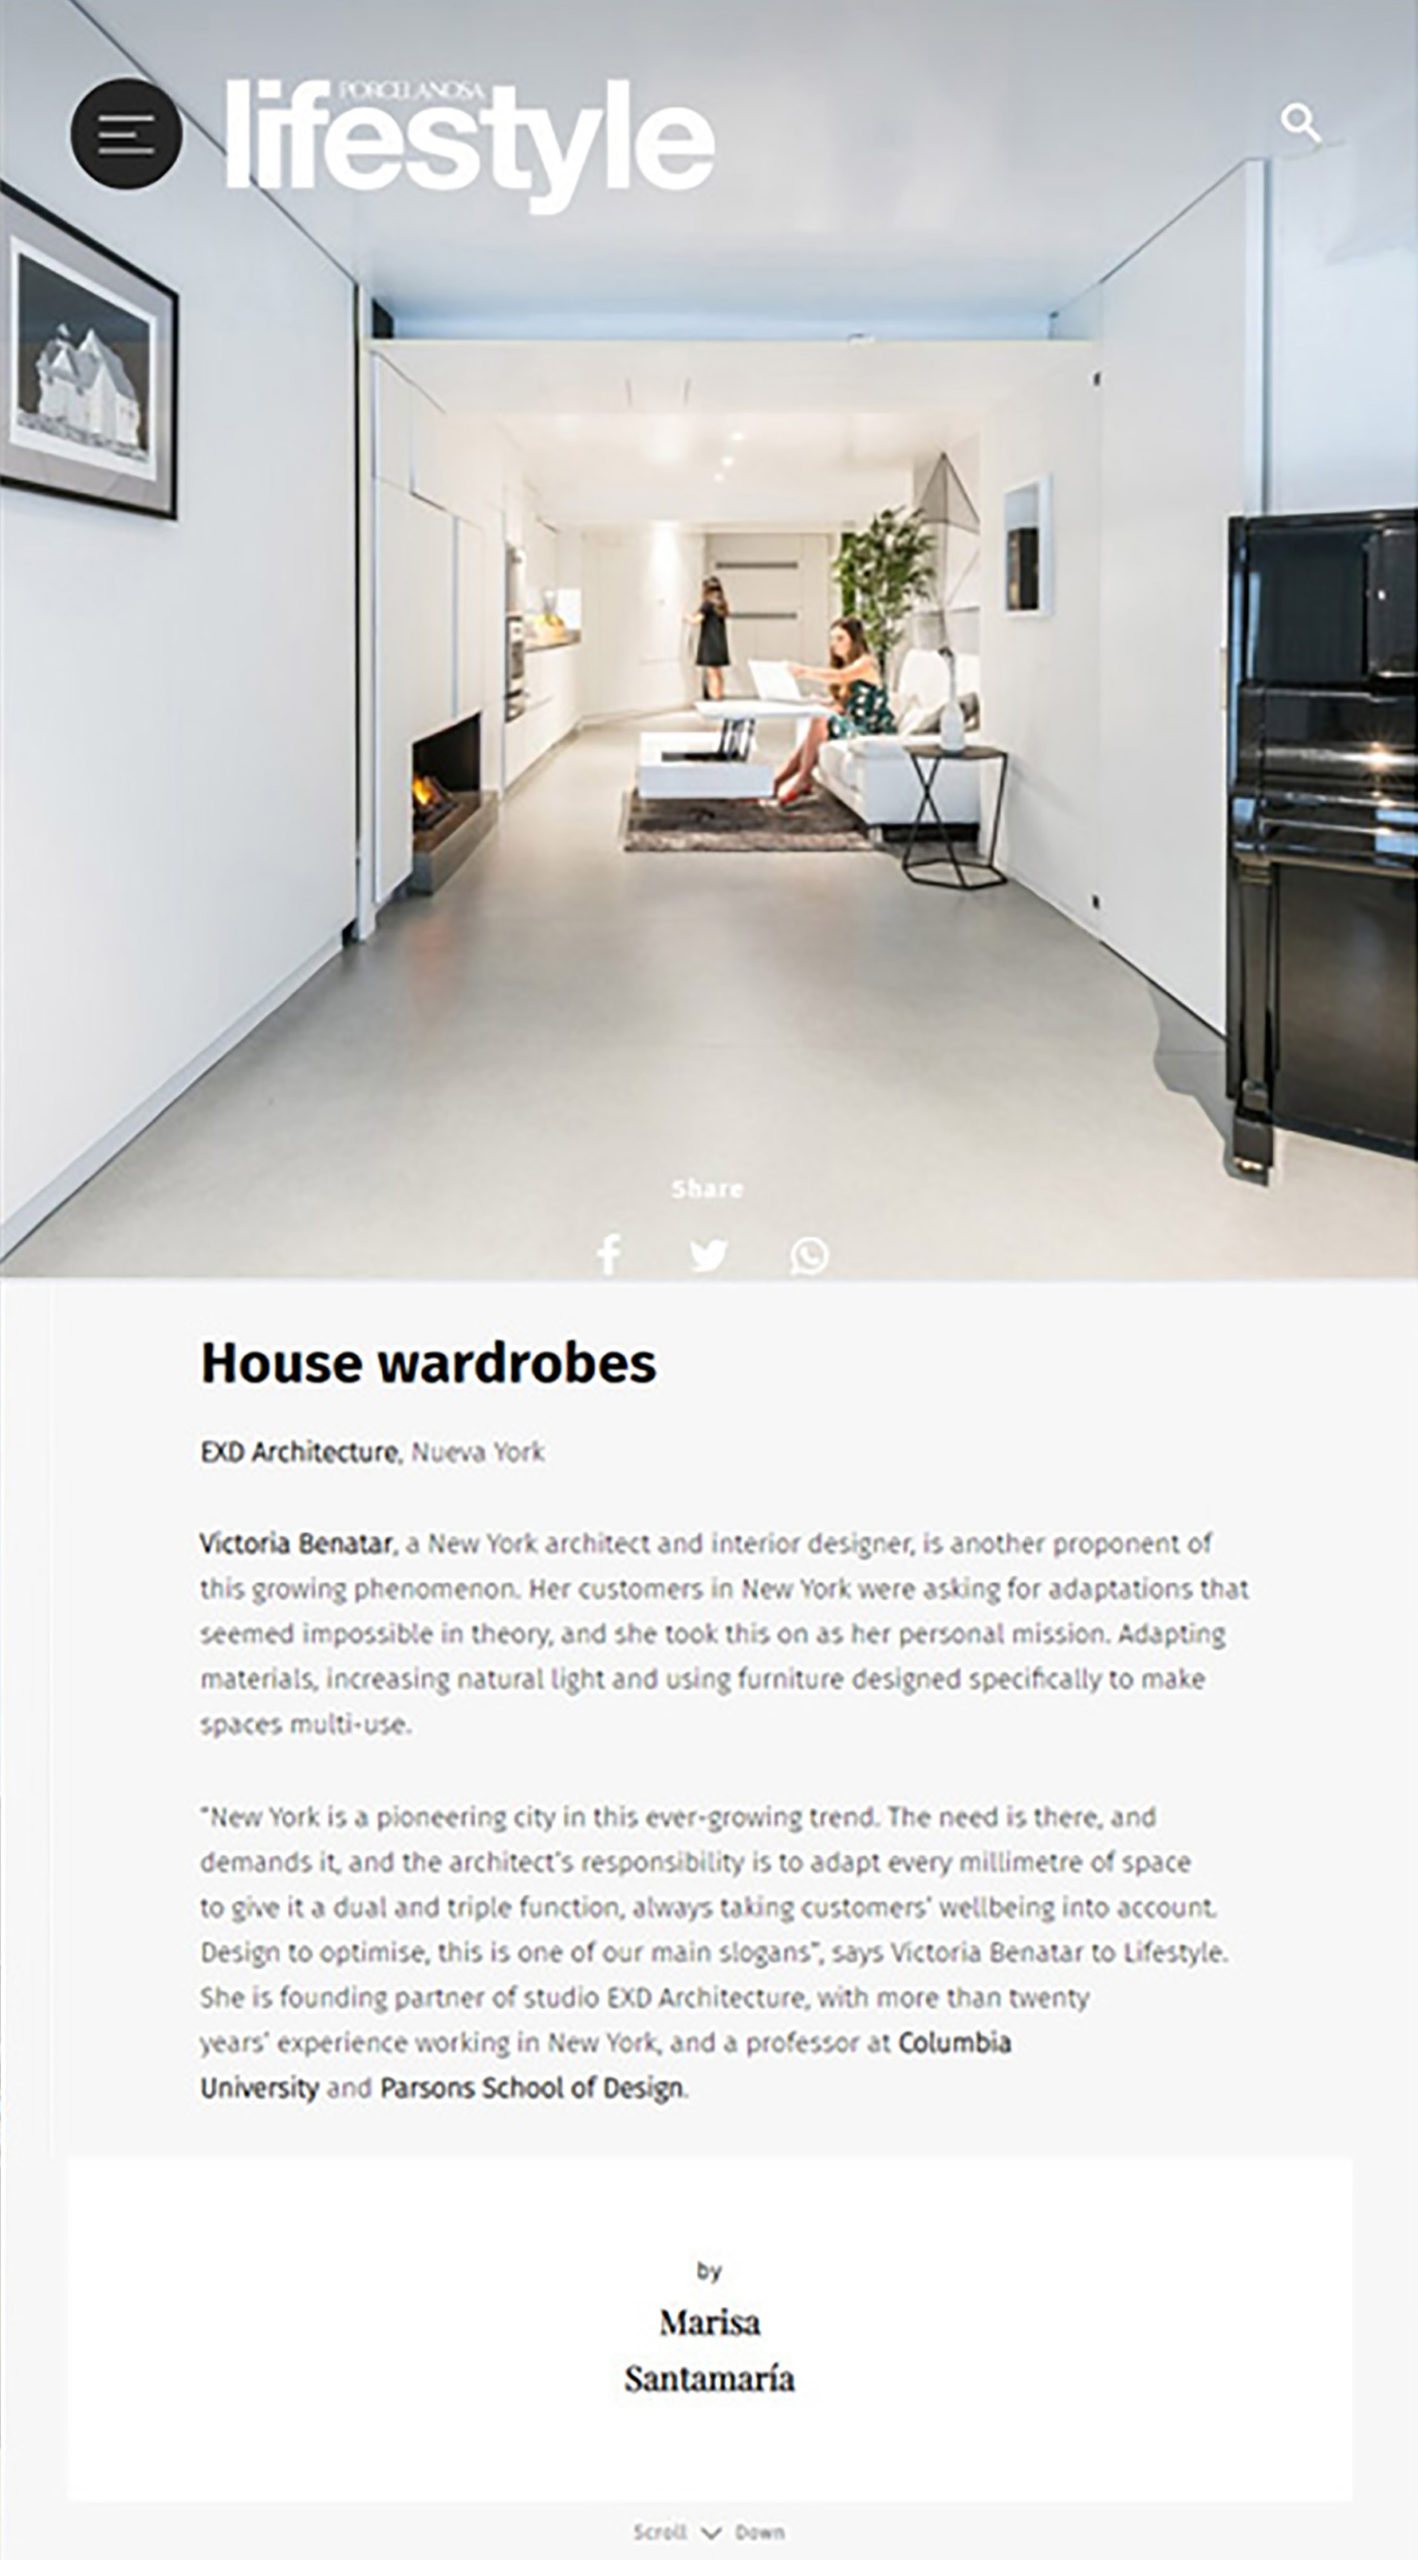 Porcelanosa Lifestyle magazine featured an article on Victoria Benatar of EXD Architecture